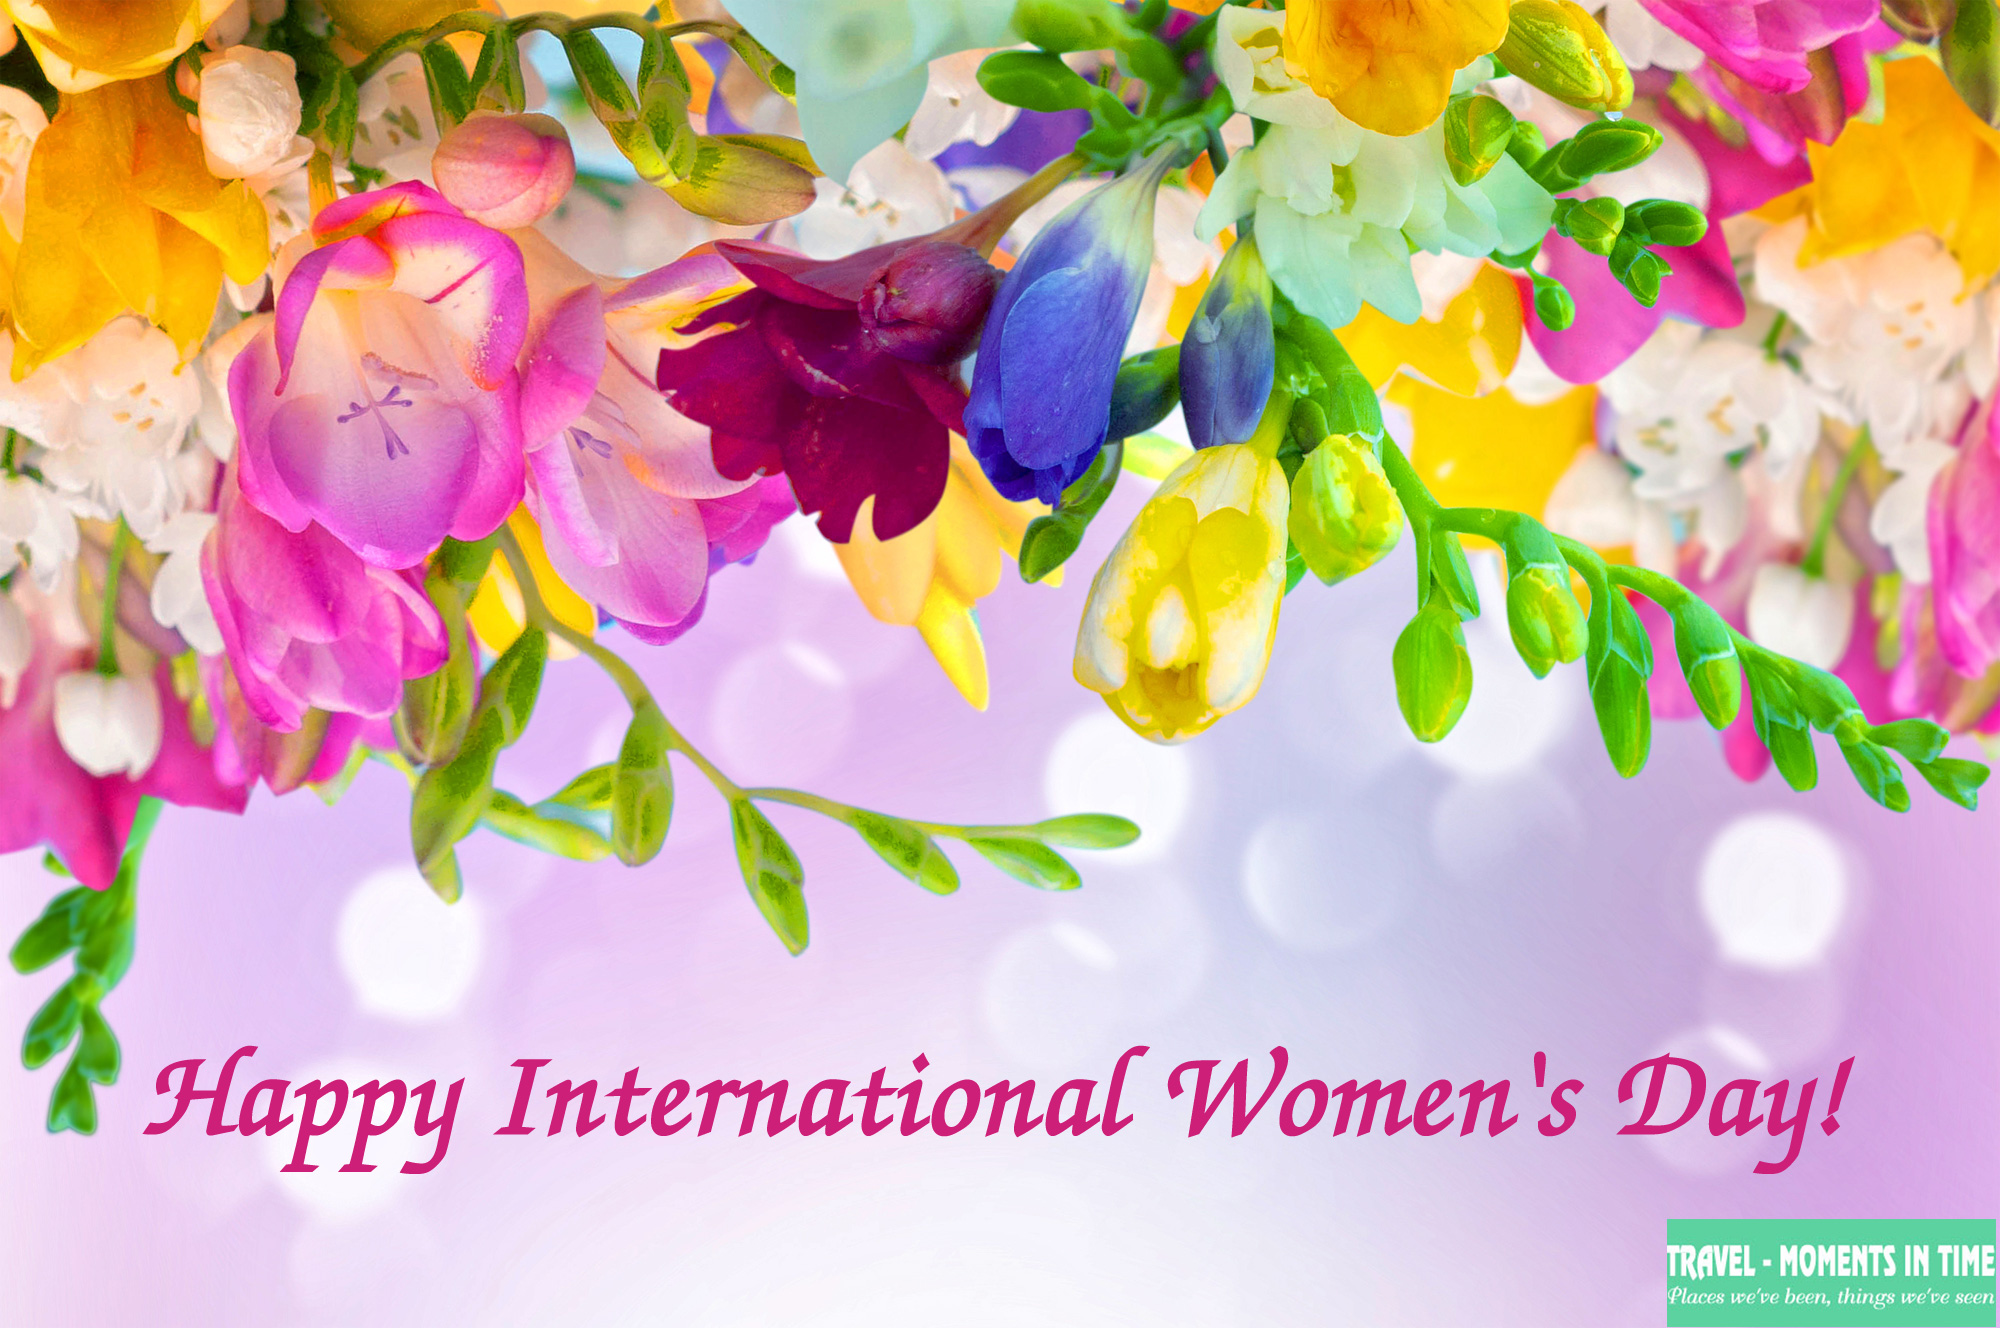 Happy International Women's Day!